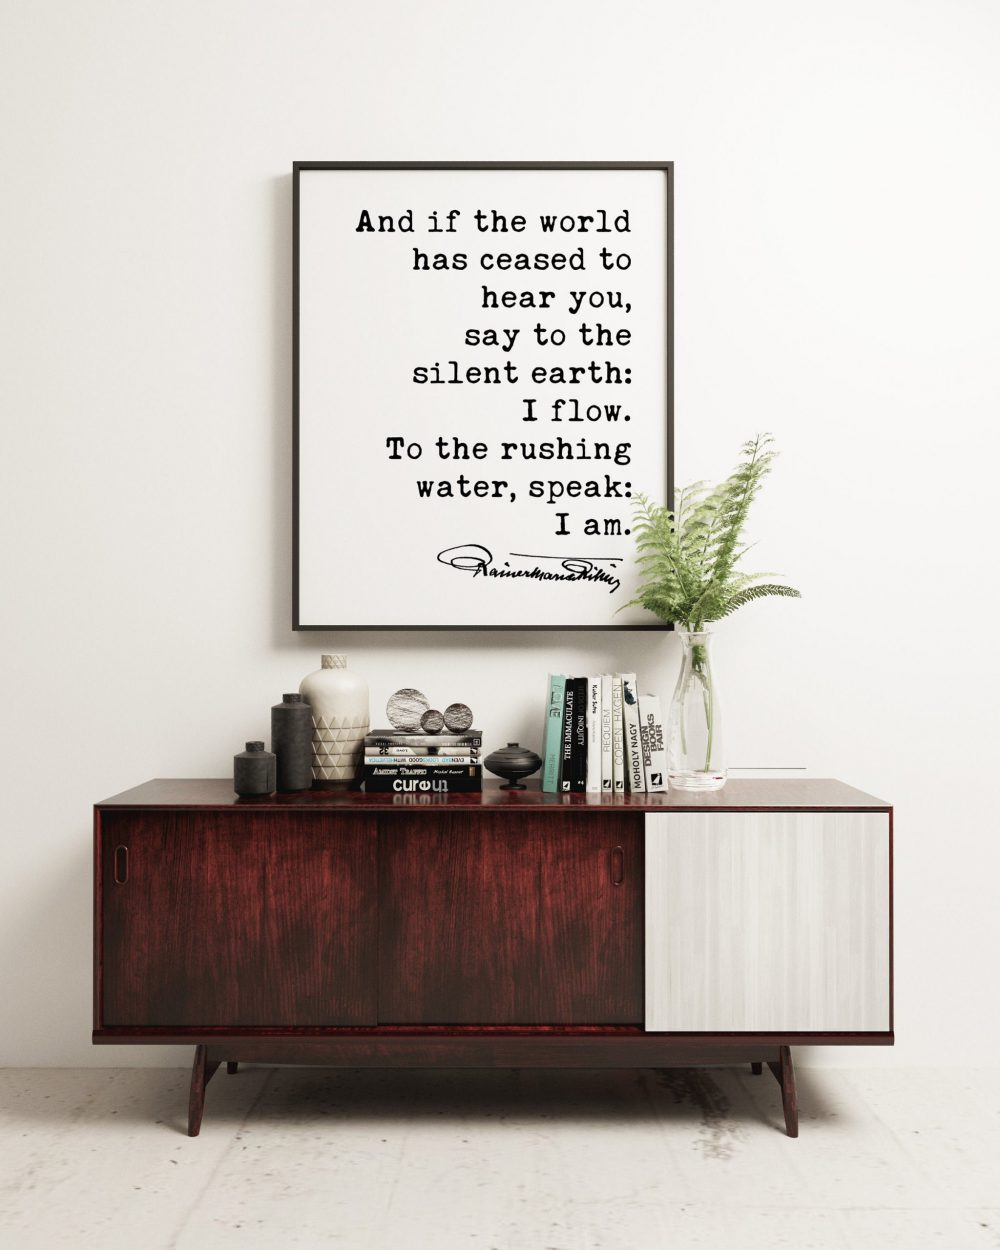 Let This Darkness Be a Bell Tower. - Rainer Maria Rilke Quote Typography Print -  Sonnets to Orpheus, And if the world has ceased hear you.